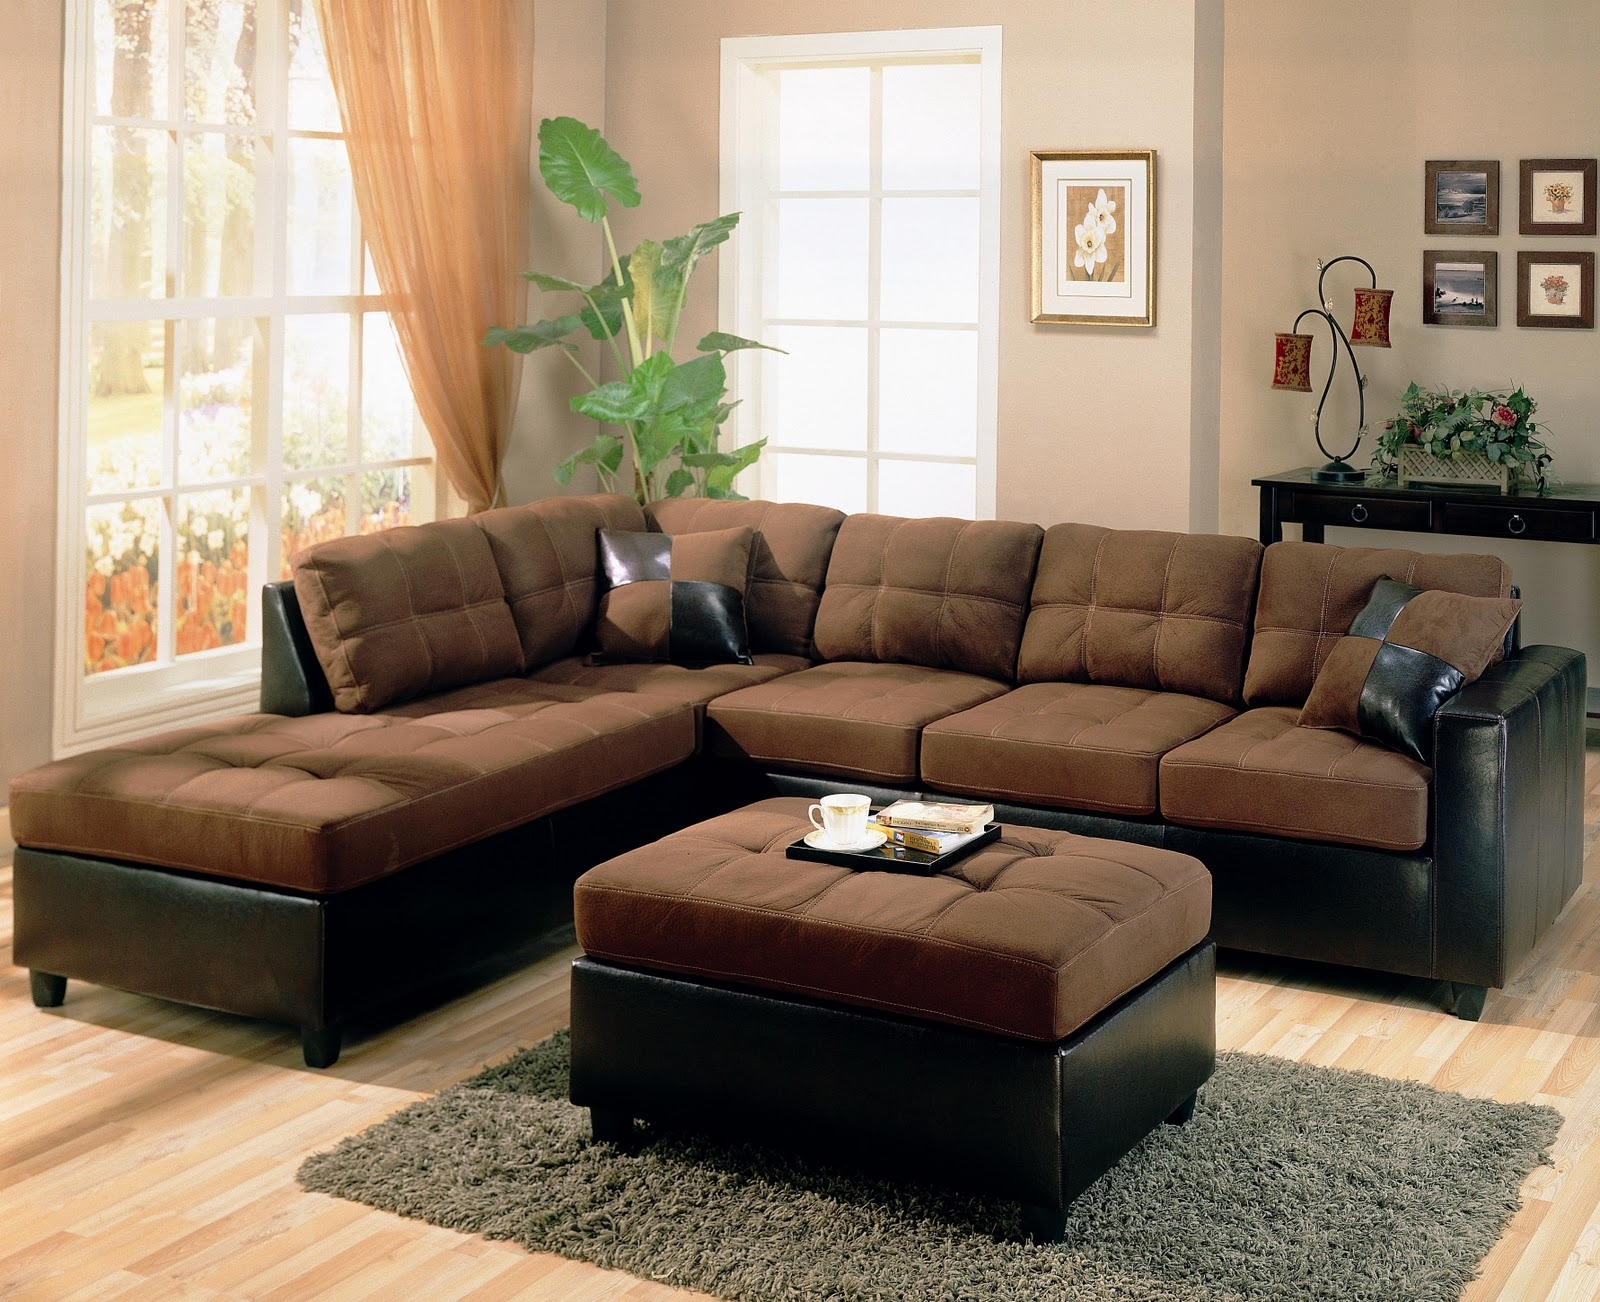 Living Room | Royal Furniture Outlet with Royal Furniture Sectional Sofas (Image 10 of 10)